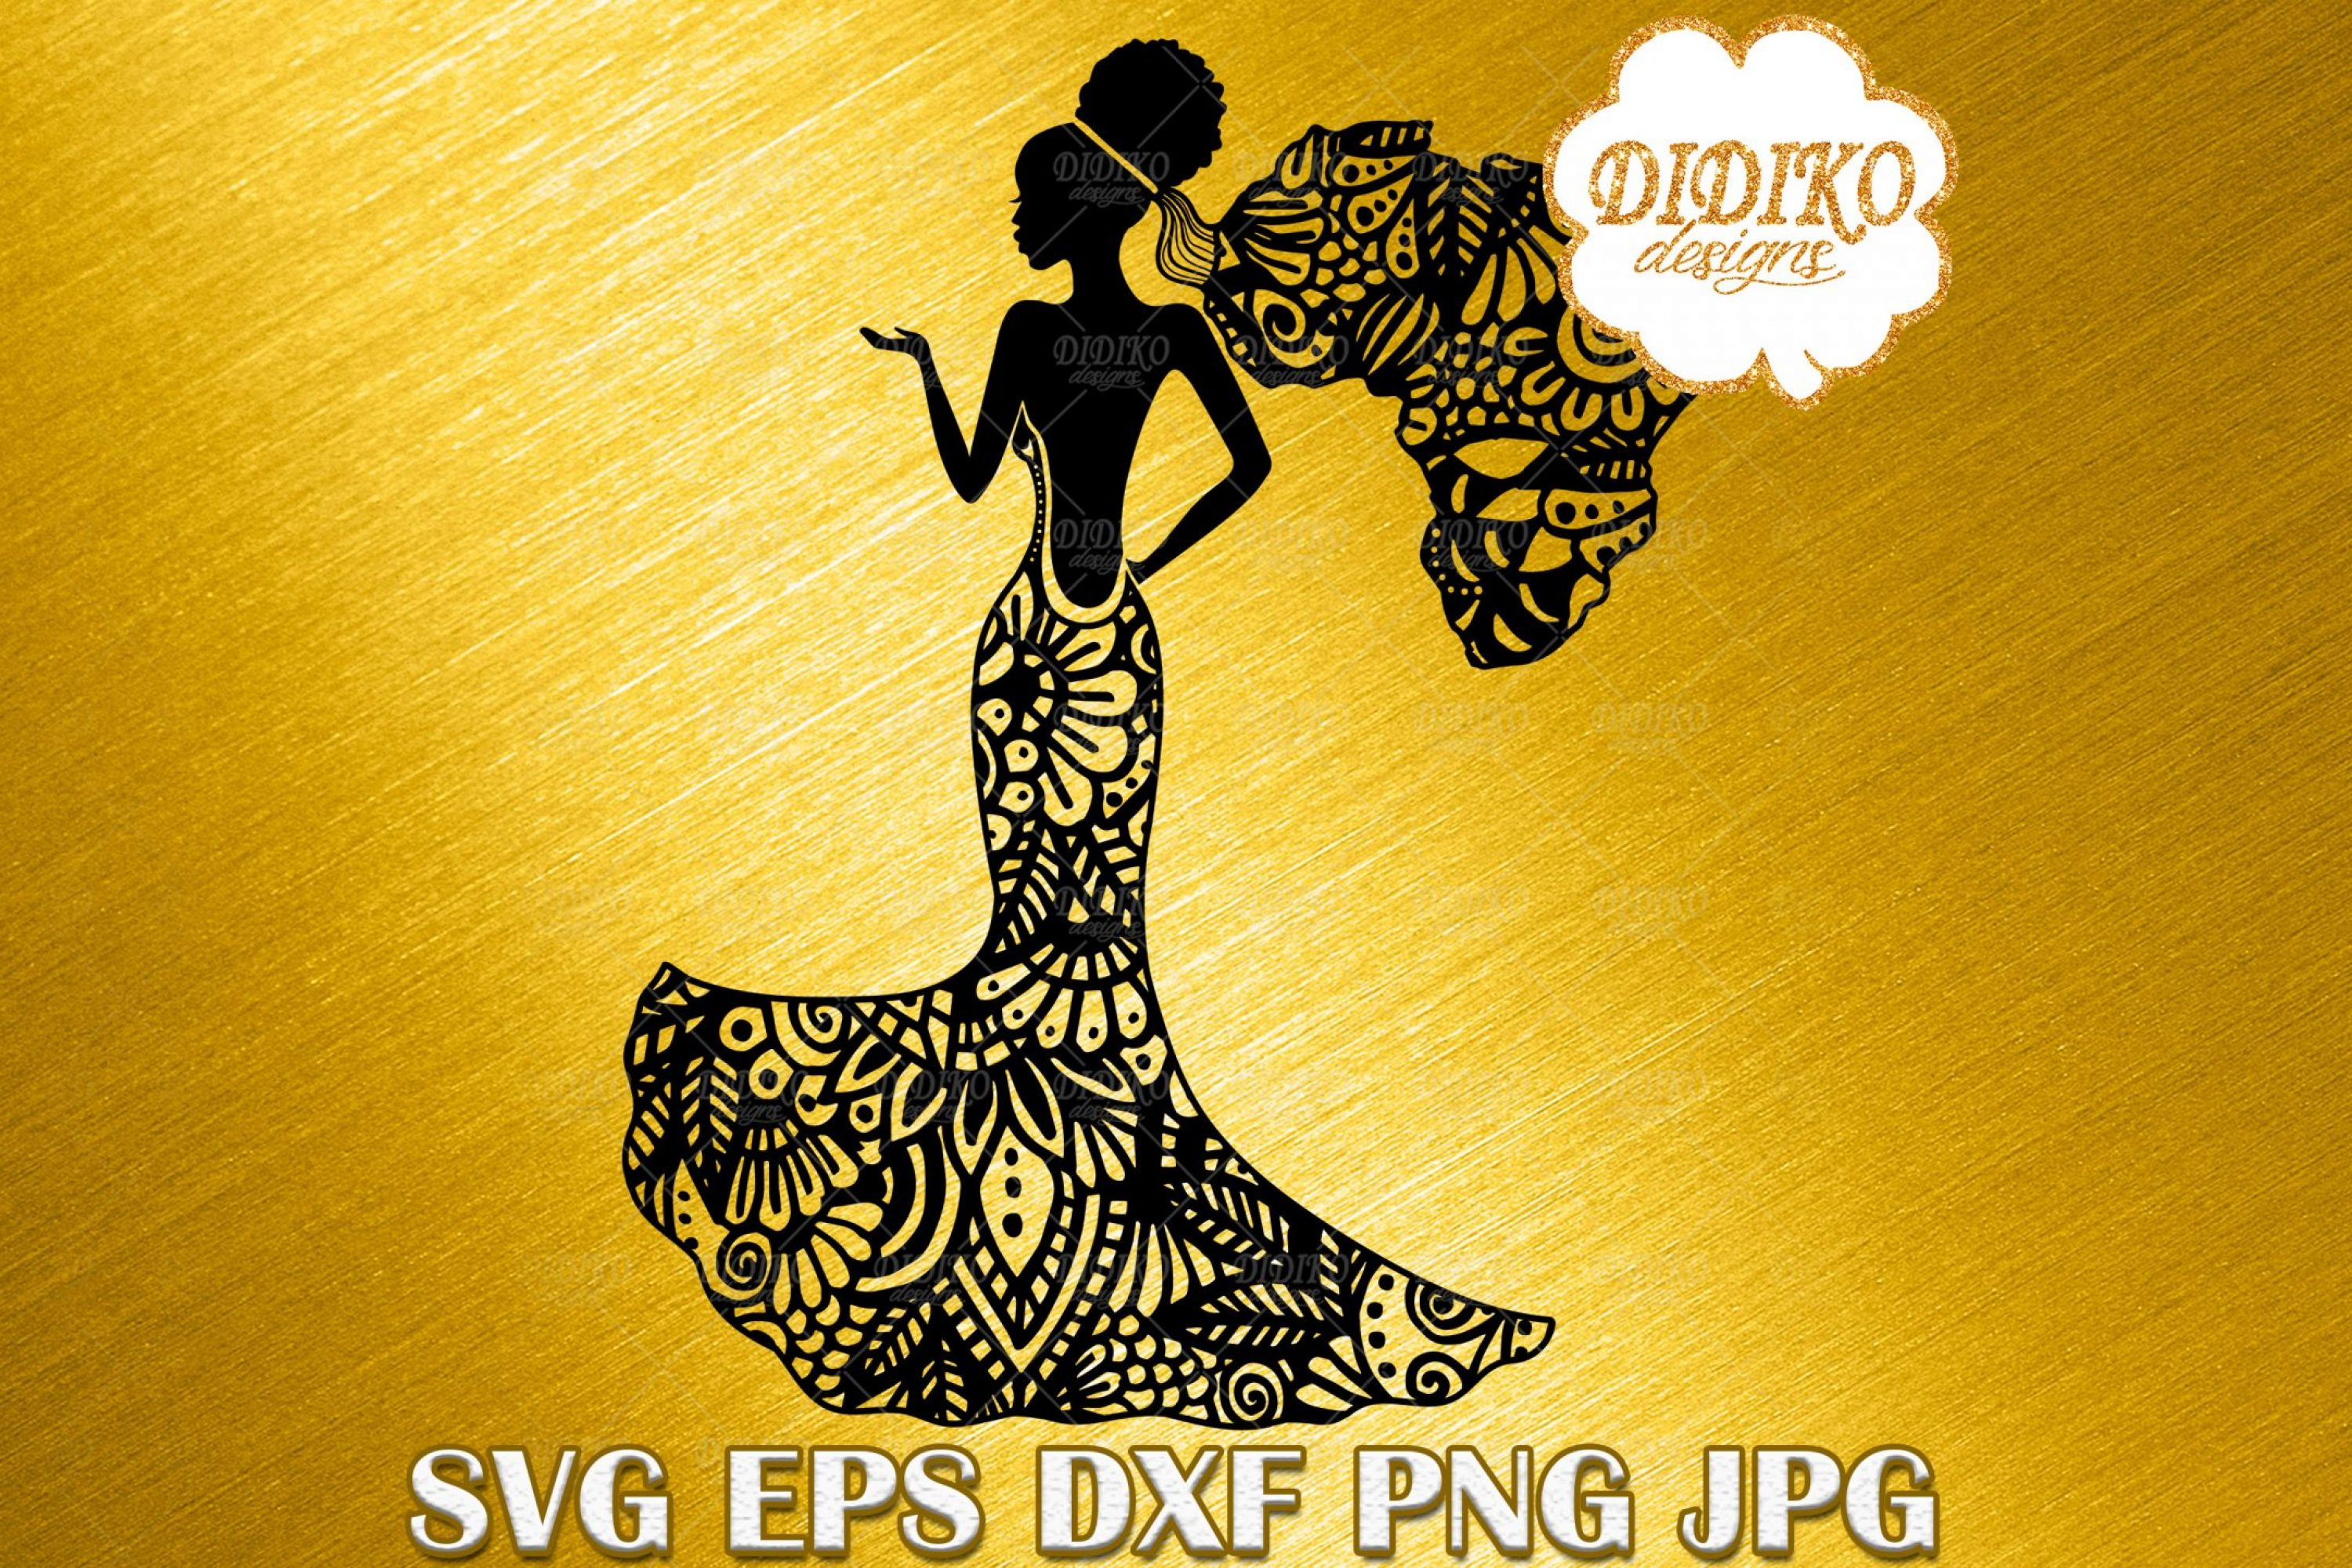 Afro Woman Bride SVG, African American Wedding SVG, Zentangle SVG, Africa SVG, DXF, EPS, PNG, JPG, Silhouette Files, Cricut Cut Files